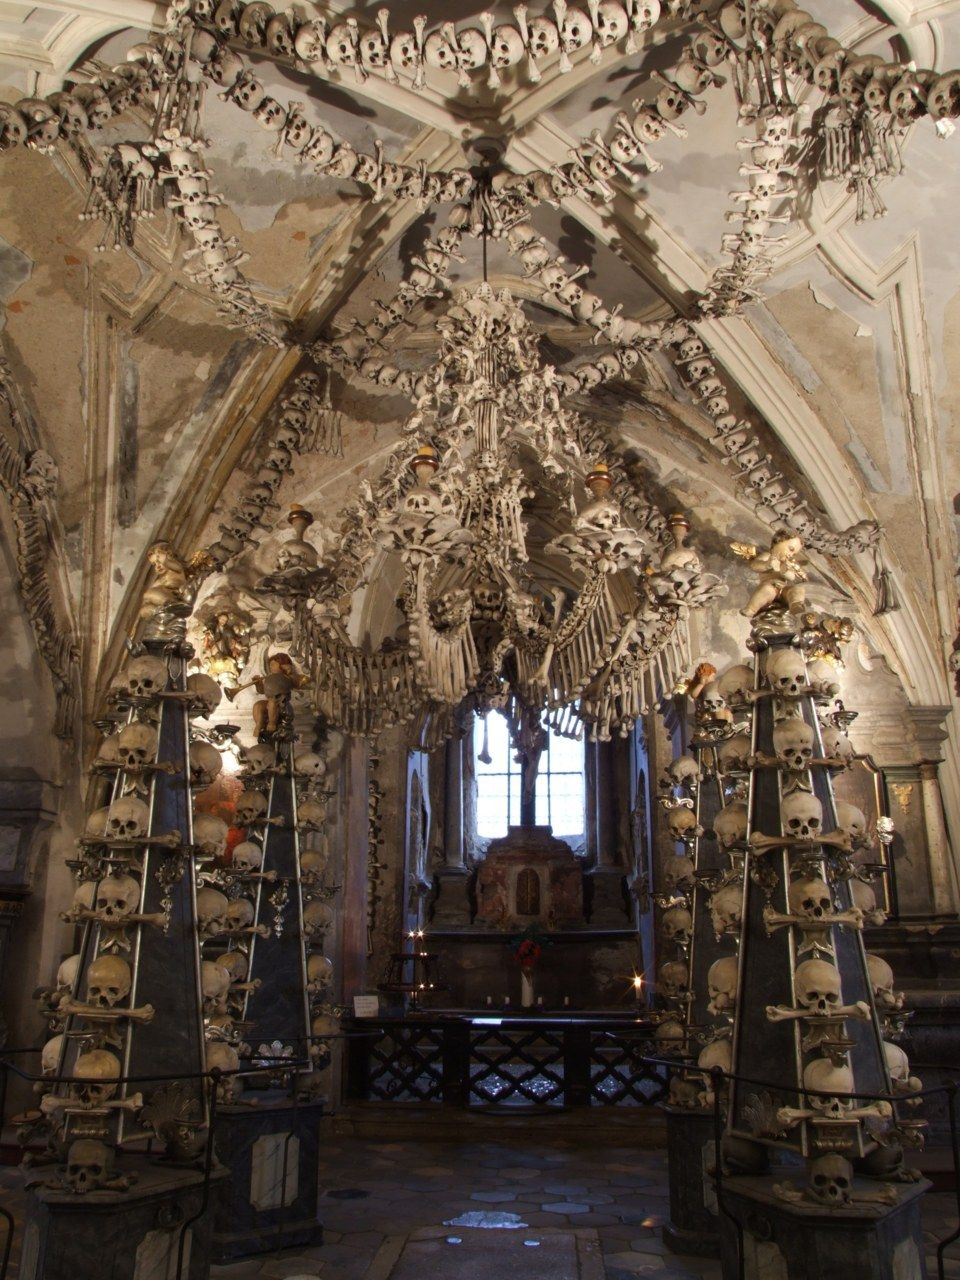 The Sedlec Ossuary in the Czech Republic contains the bones of somewhere between 40,000 and 70,000 people.